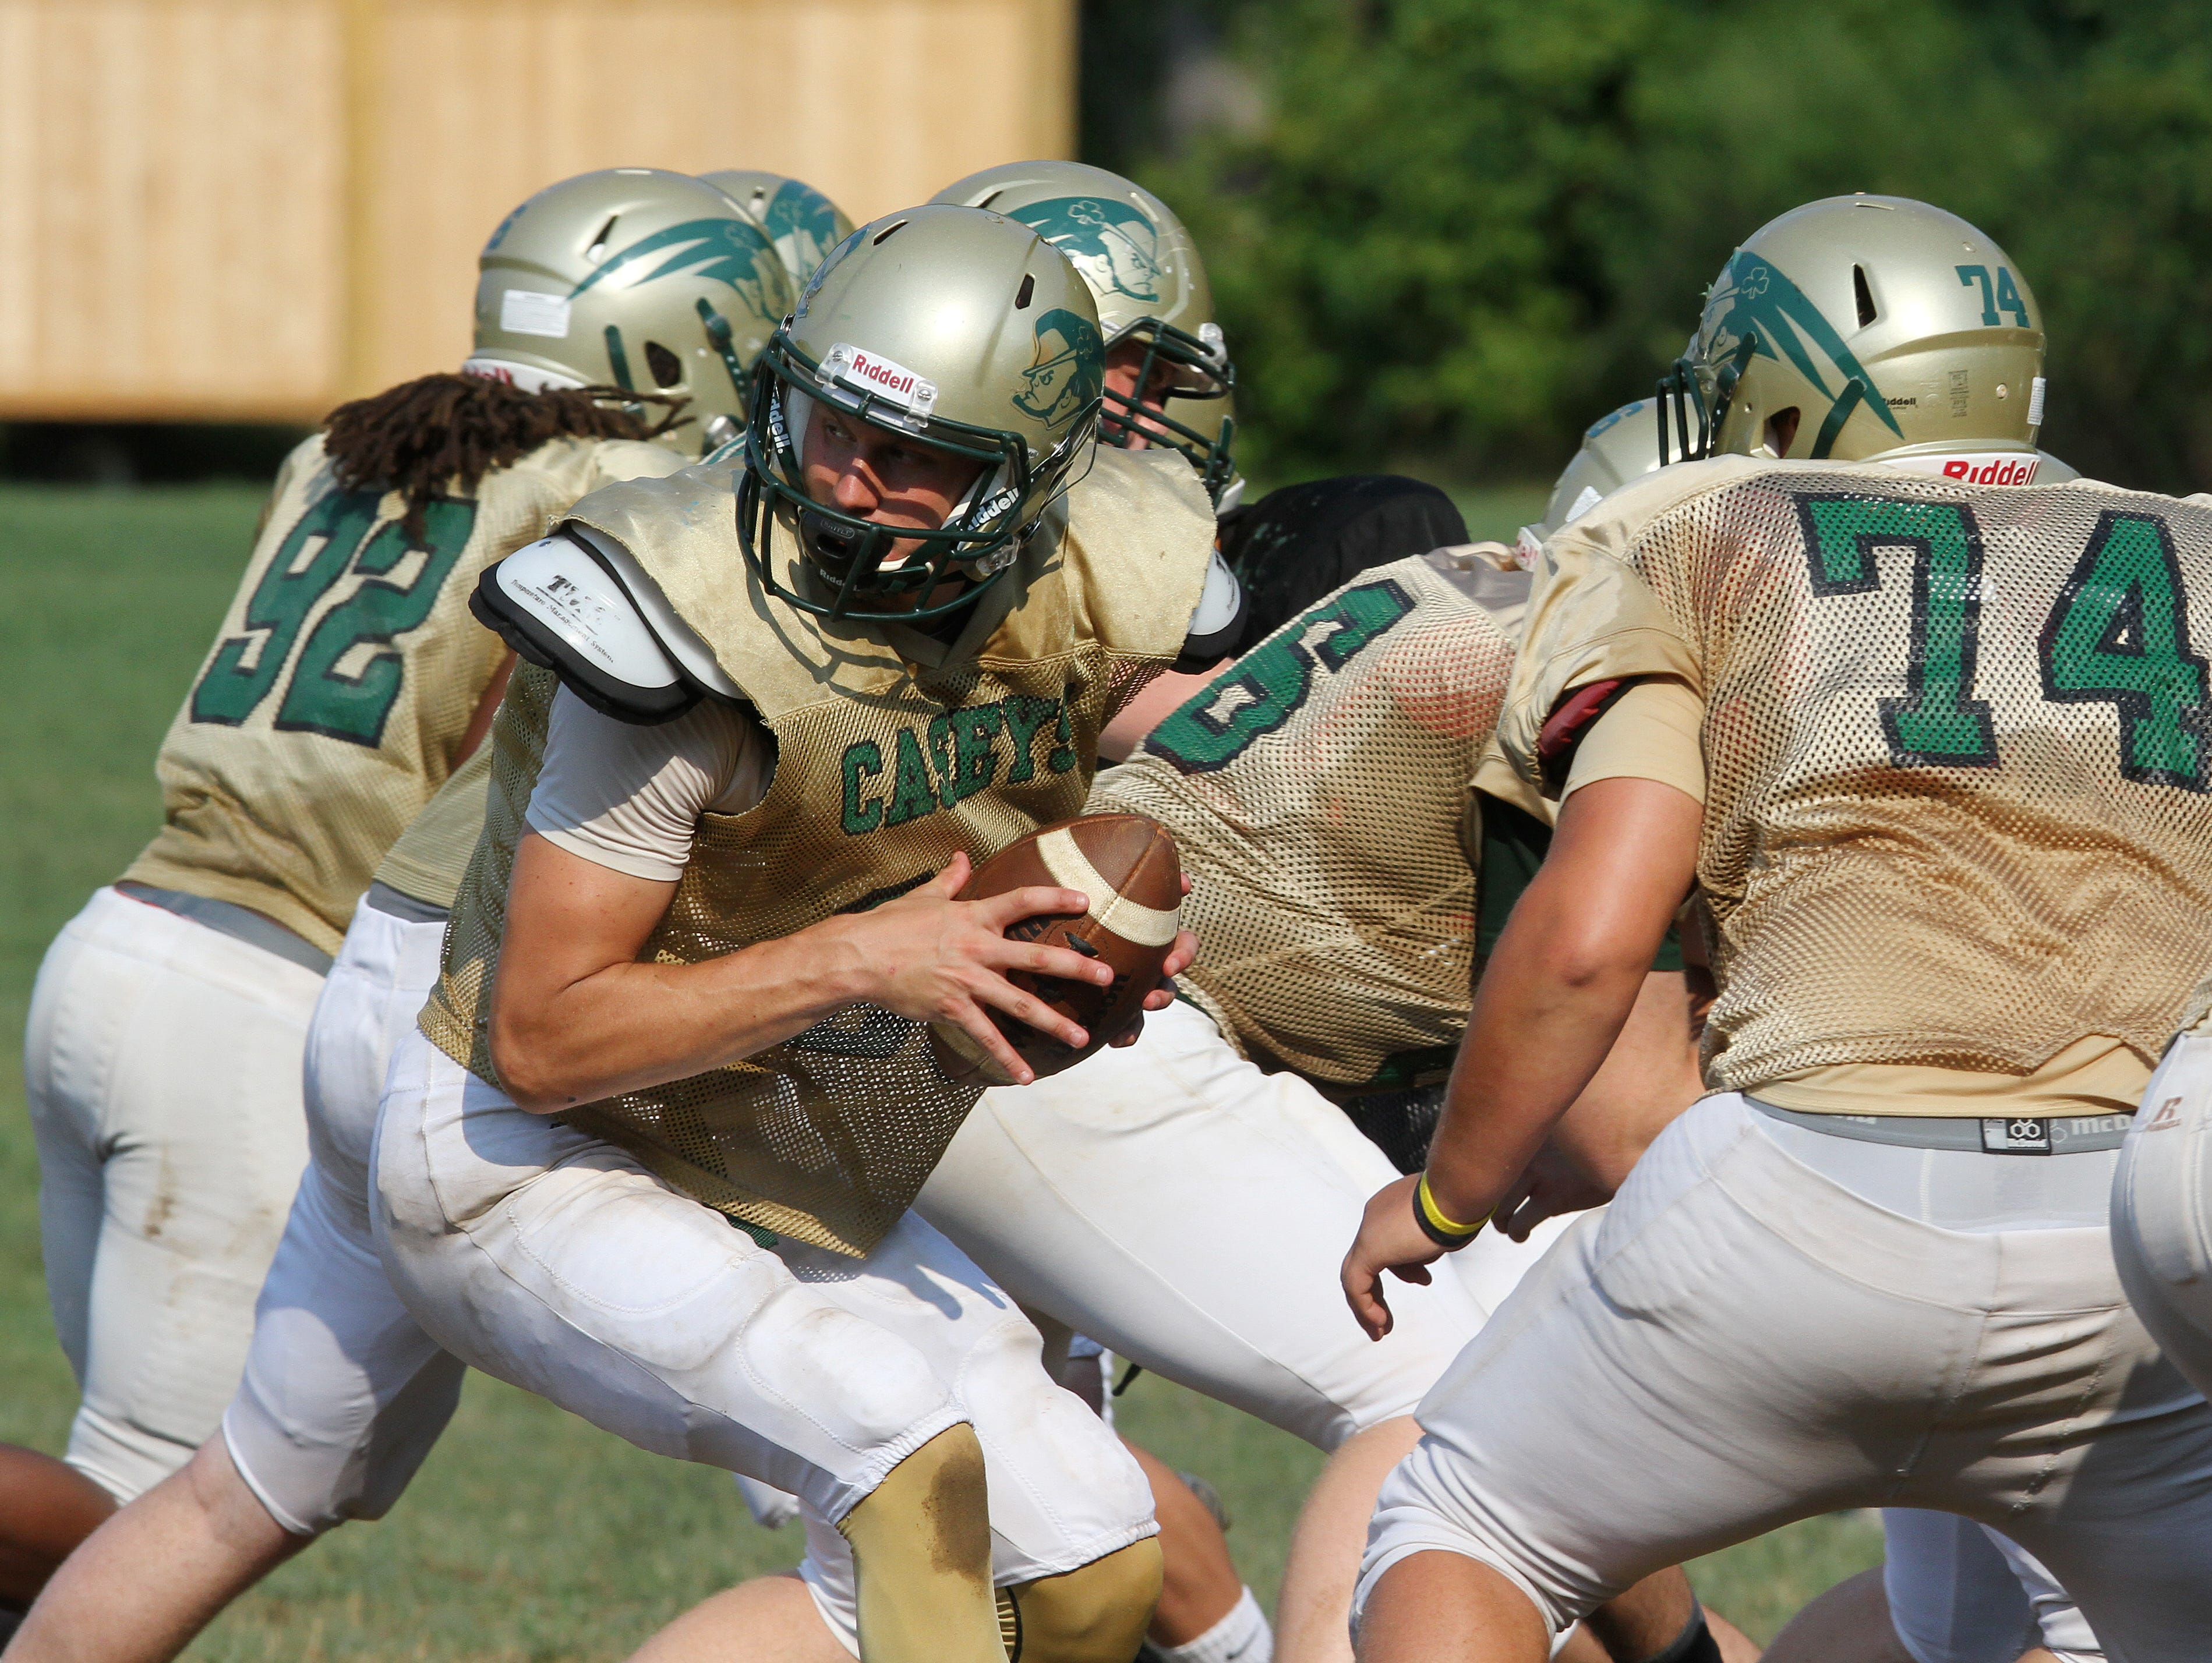 Red Bank Catholic senior quarterback Eddie Hahn threw for 301 yards and three TDs in his first game since he tore the meniscus in his knee on Aug. 18